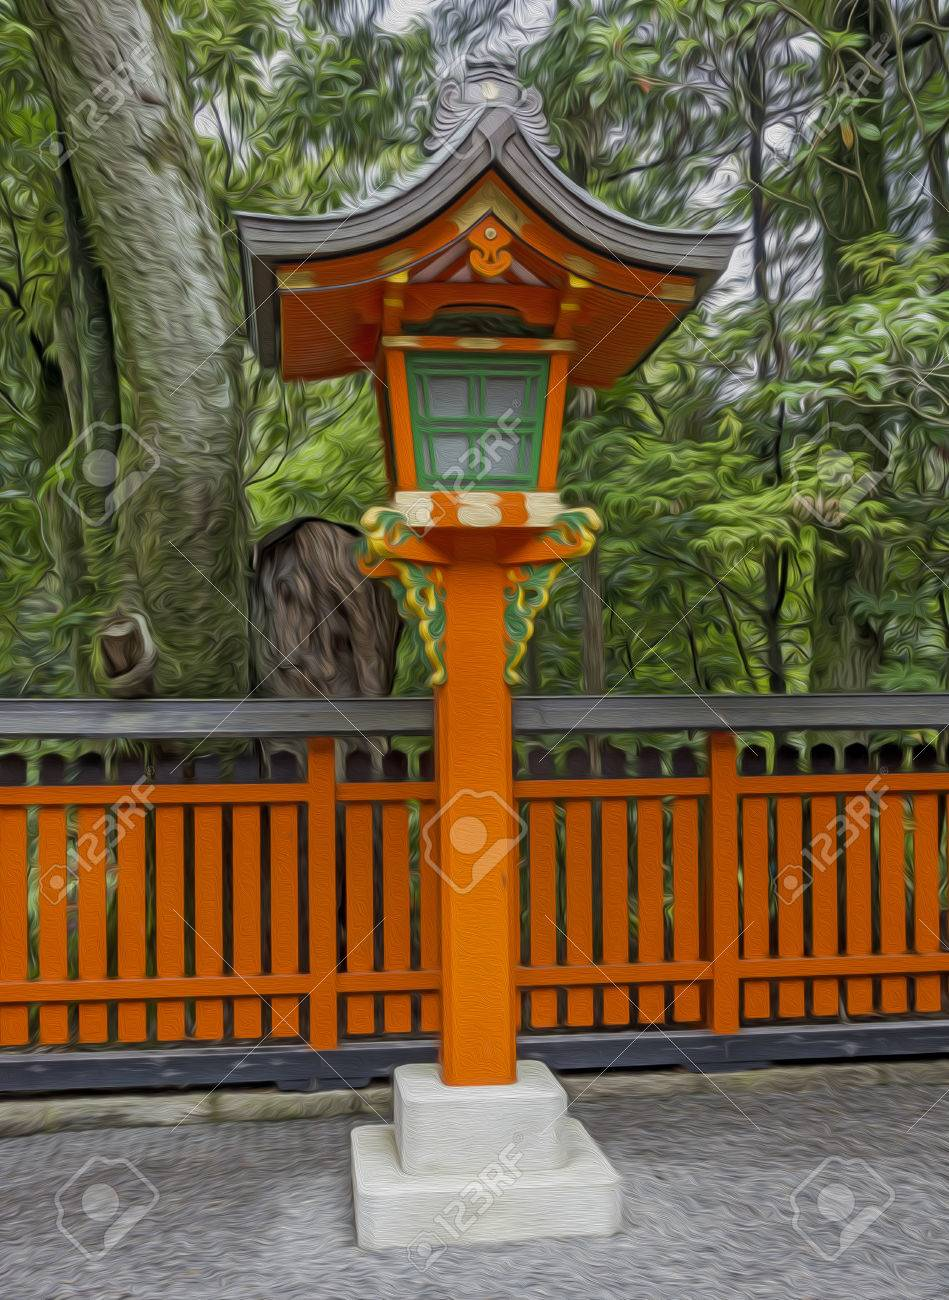 Ornamental Orange Wooden Lantern At A Japanese Shinto Shrine Stock Photo Picture And Royalty Free Image Image 29032123